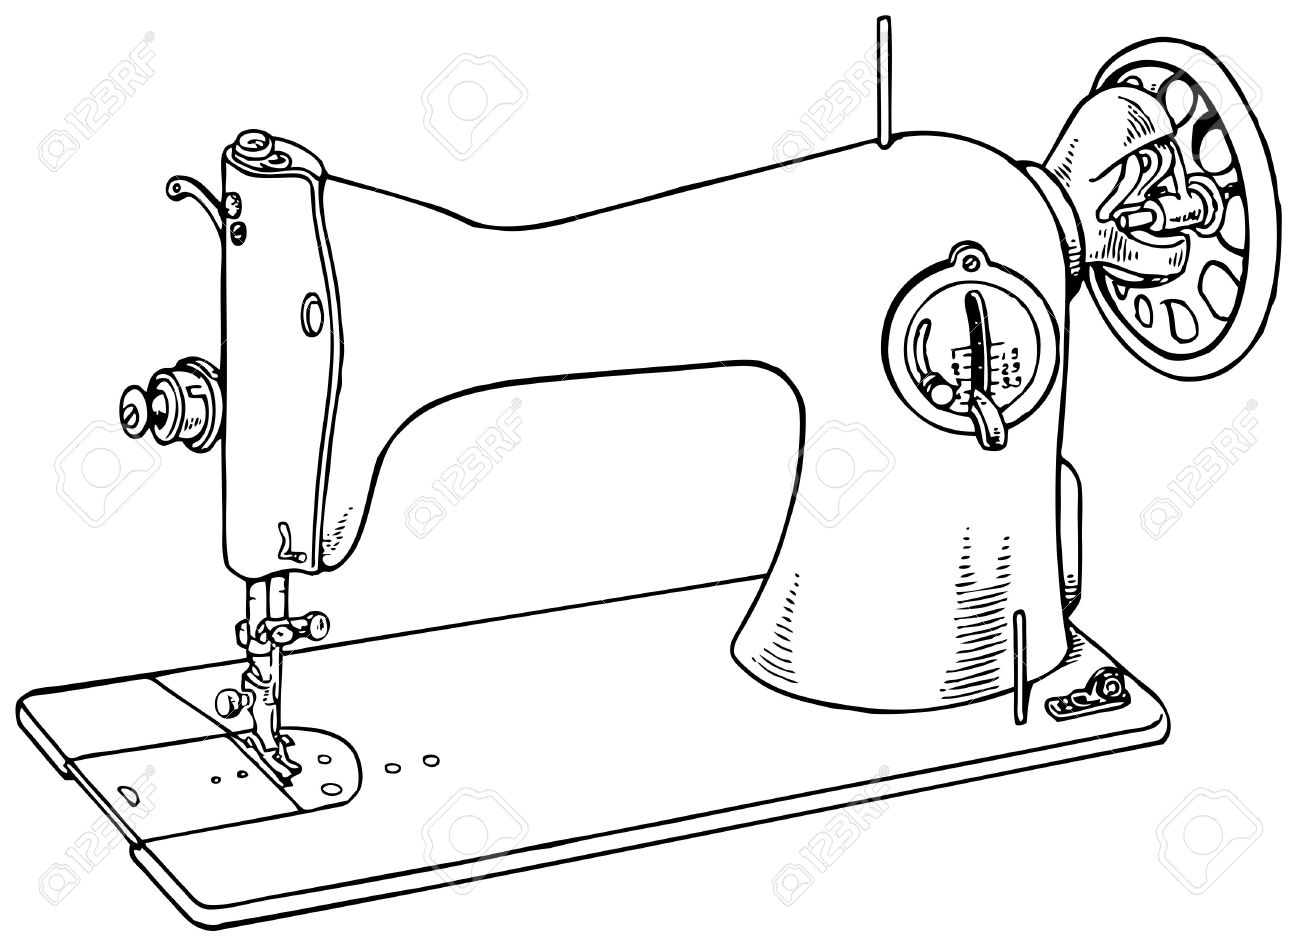 Sewing Machine Drawing At Getdrawings